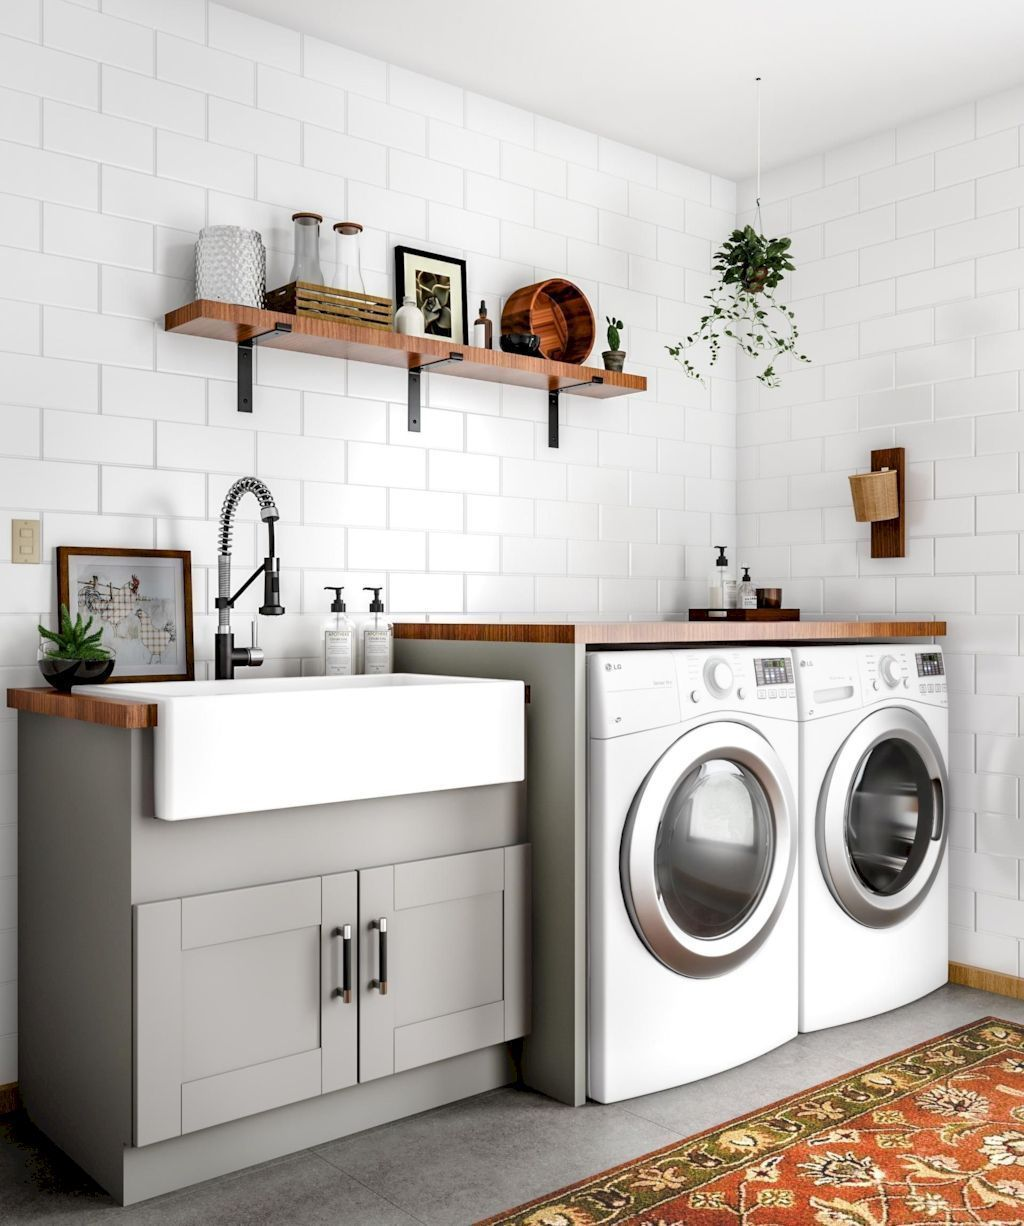 Amazing Simple Laundry Room Design Ideas Modern Laundry Rooms Laundry Room Decor Dream Laundry Room